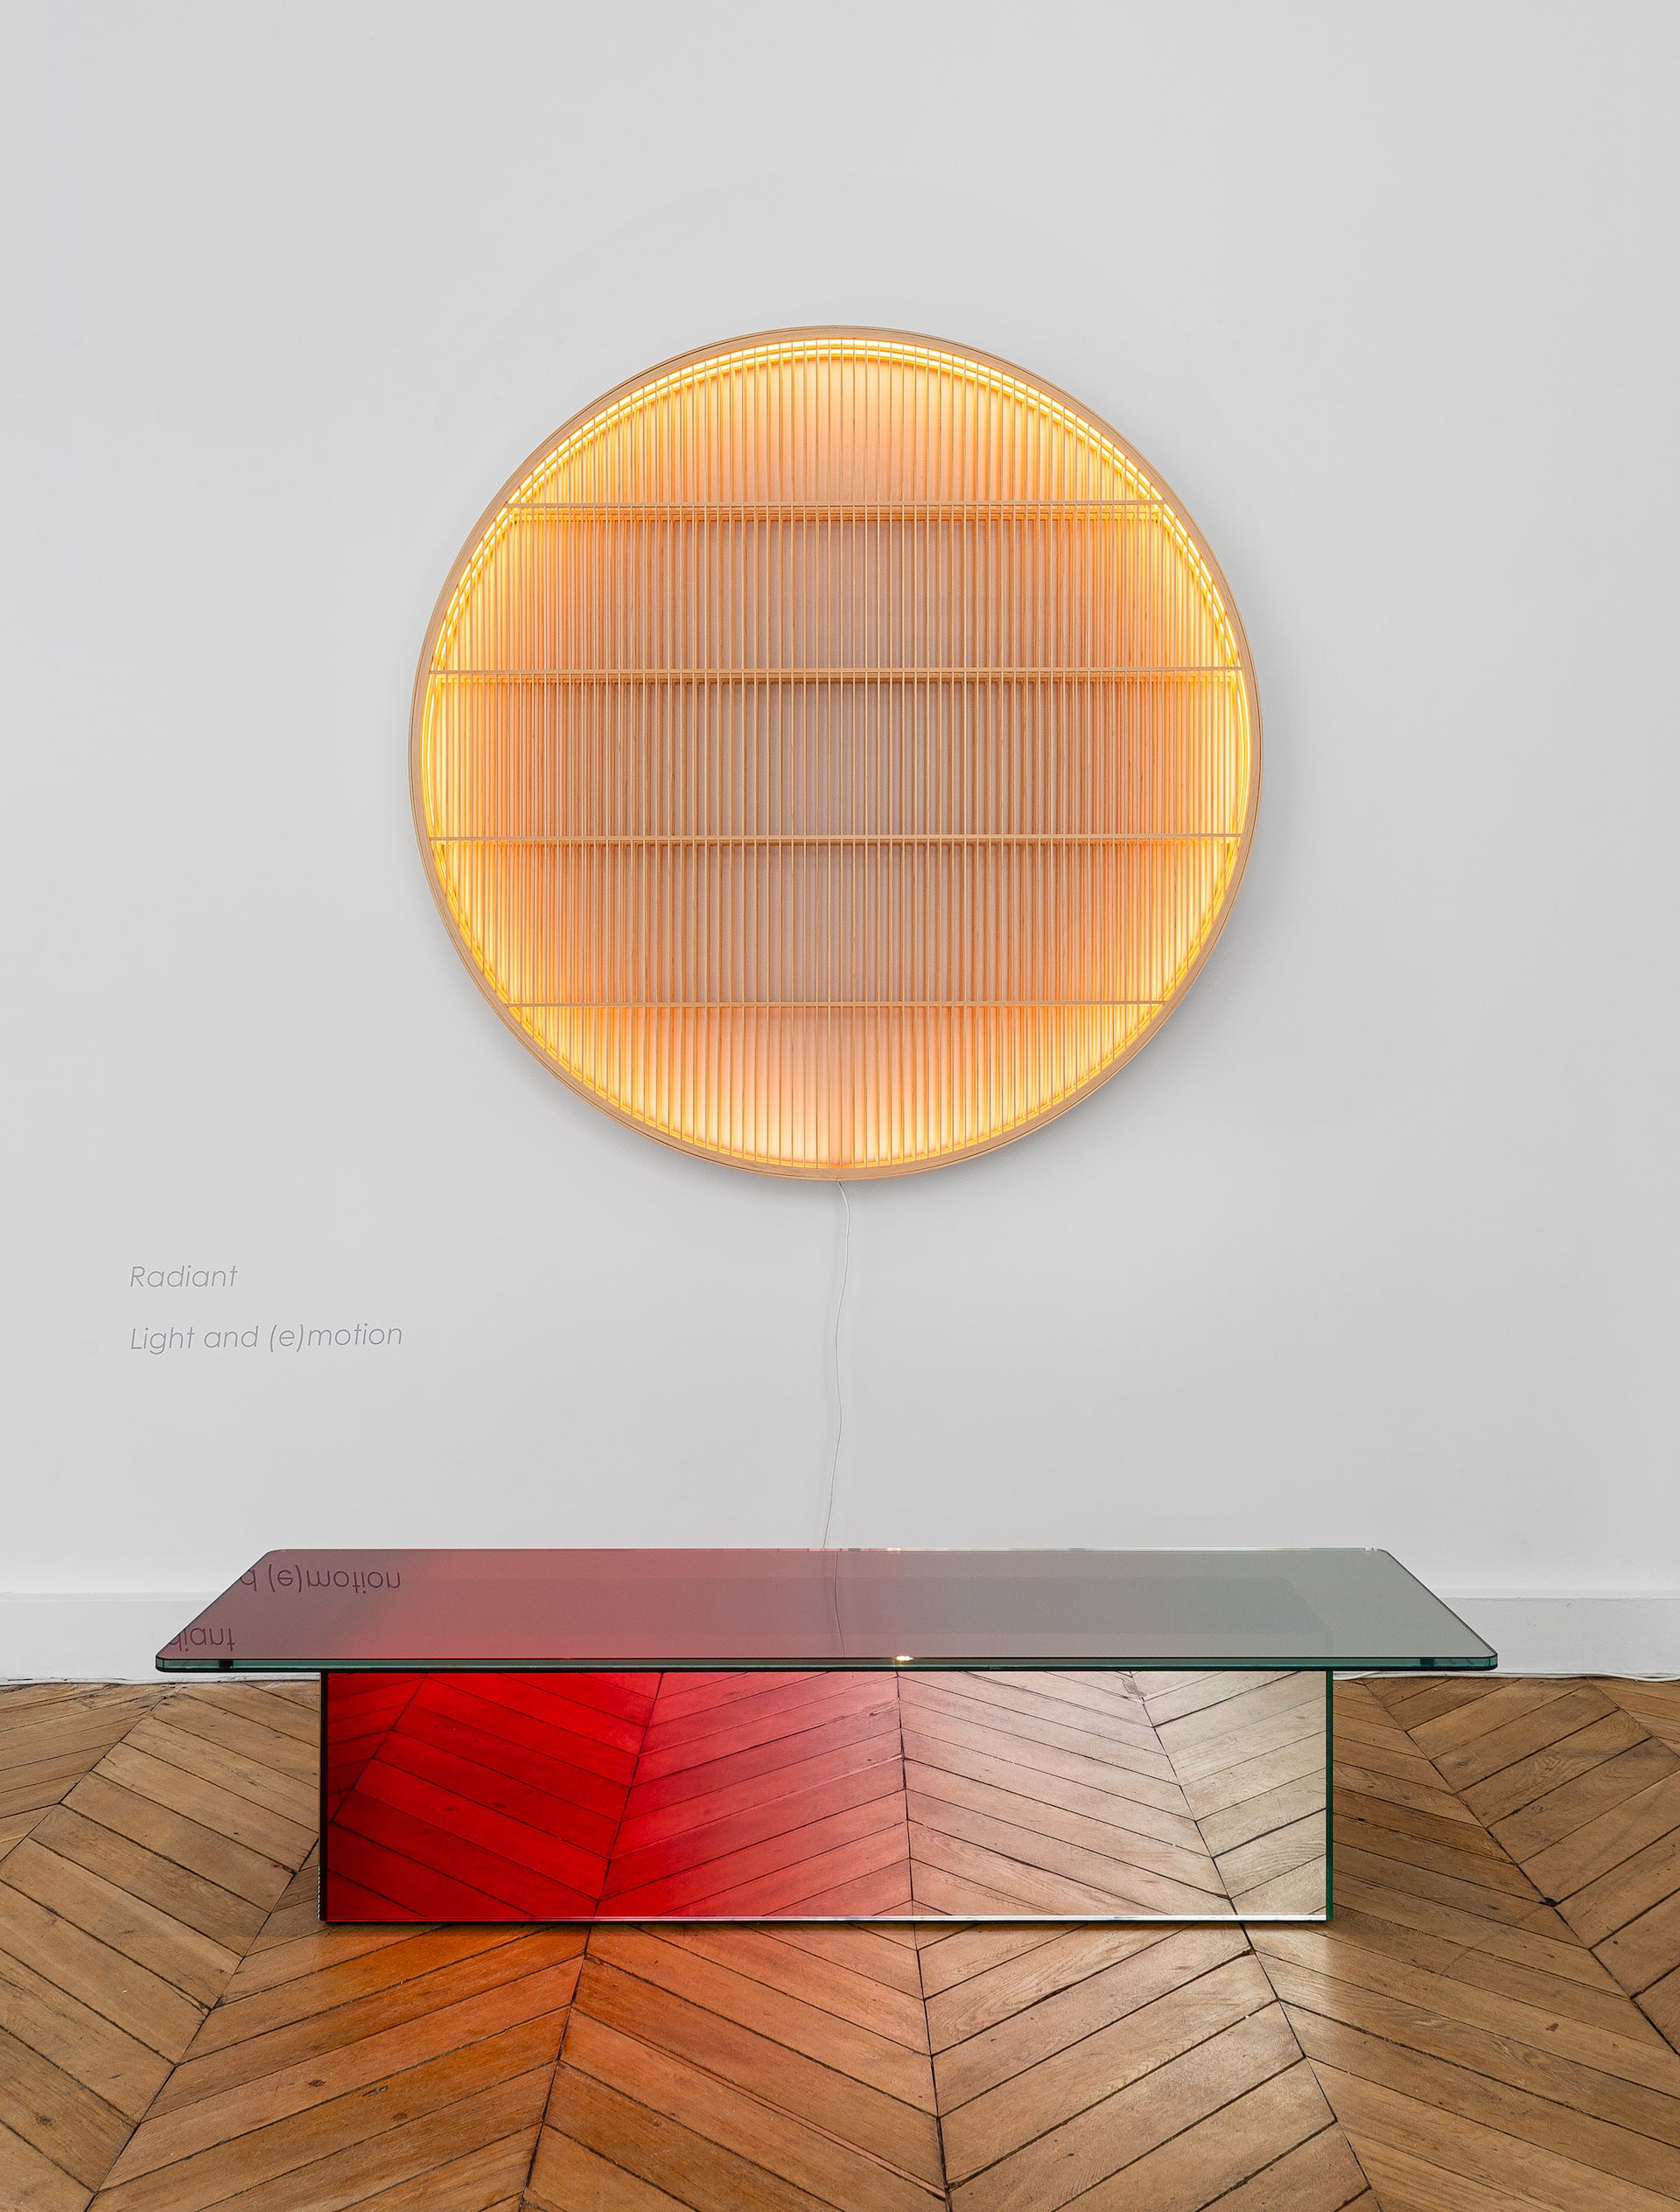 RADIANT: Light and (e)Motion at Galerie Maria Wettergren, featuring Light Object by Ane Lykke, 2018, and Presence–Absence by Germans Ermics and Iskos-Berlin, 2017. Photo © Gregory Copitet; Courtesy of Galerie Maria Wettergren